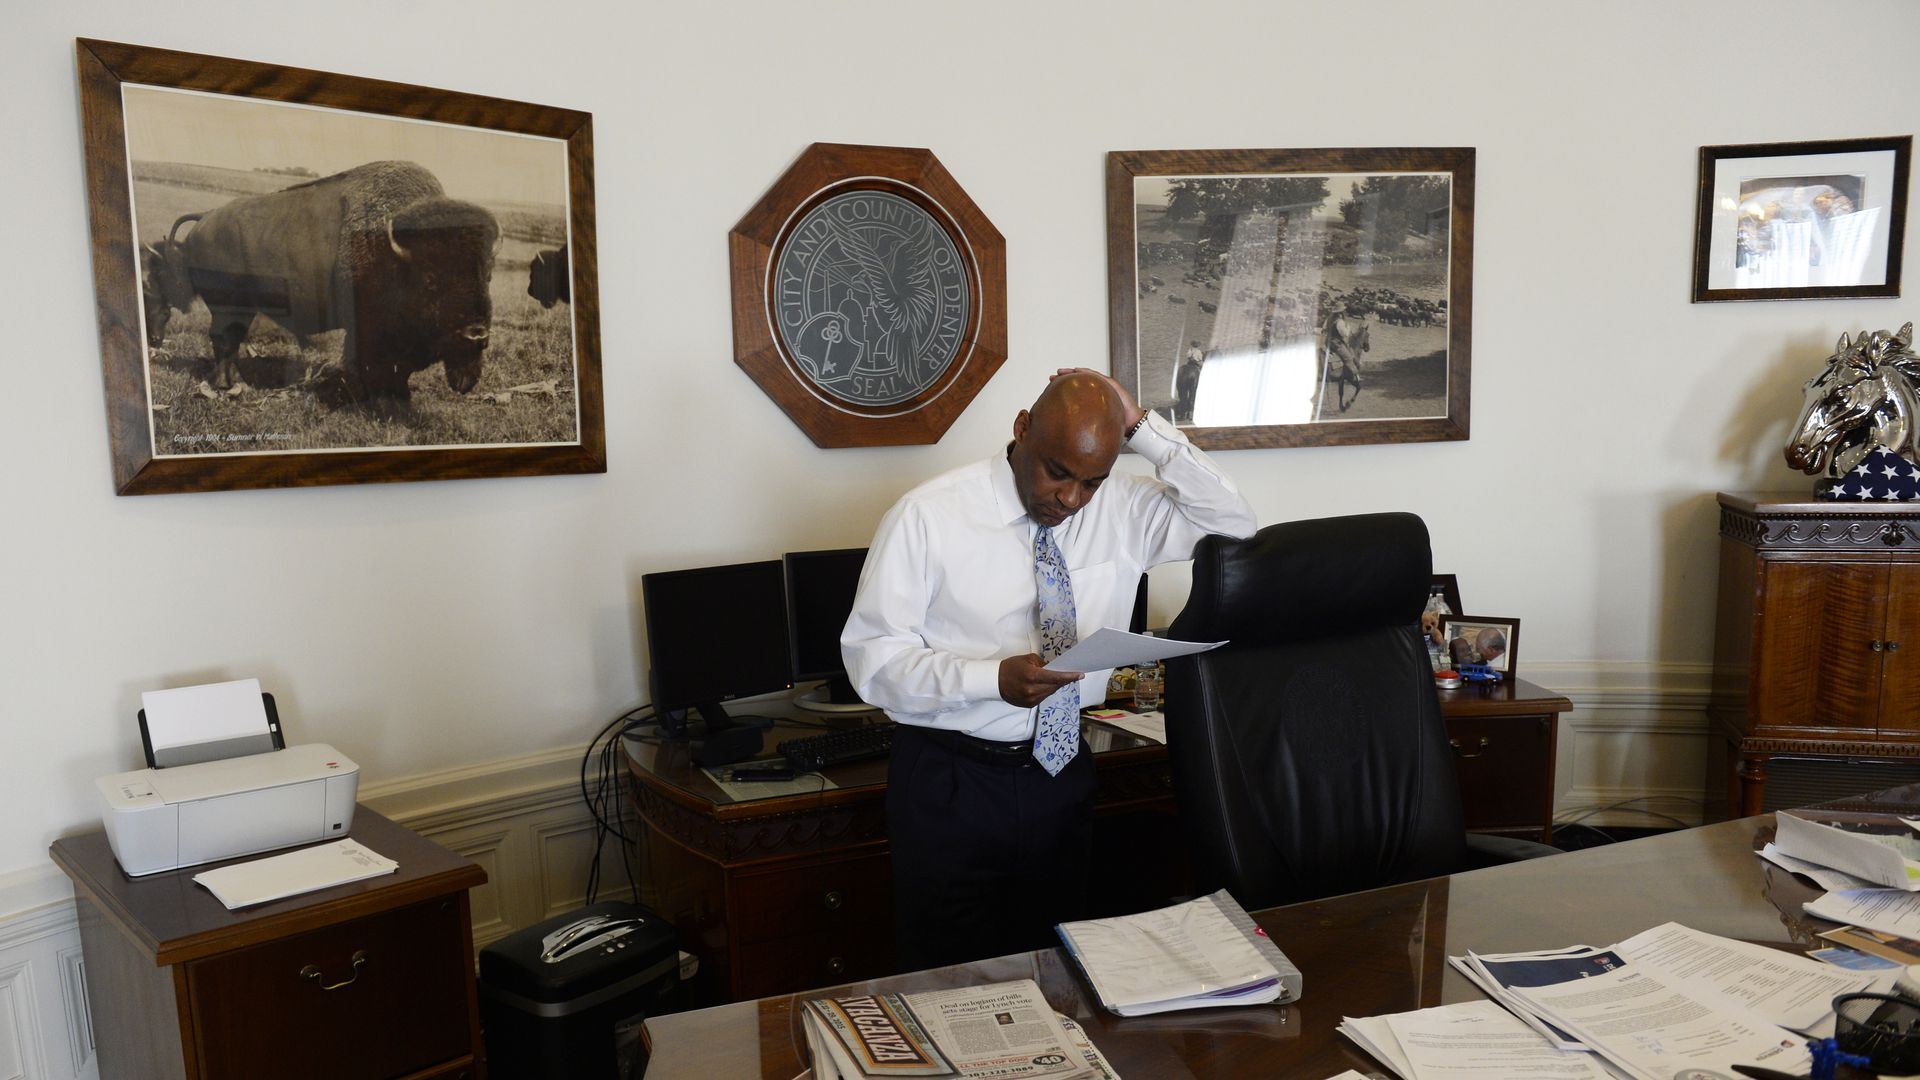 A photo of Denver Mayor Michael Hancock standing at his desk and looking down at some documents with his hand on his head.